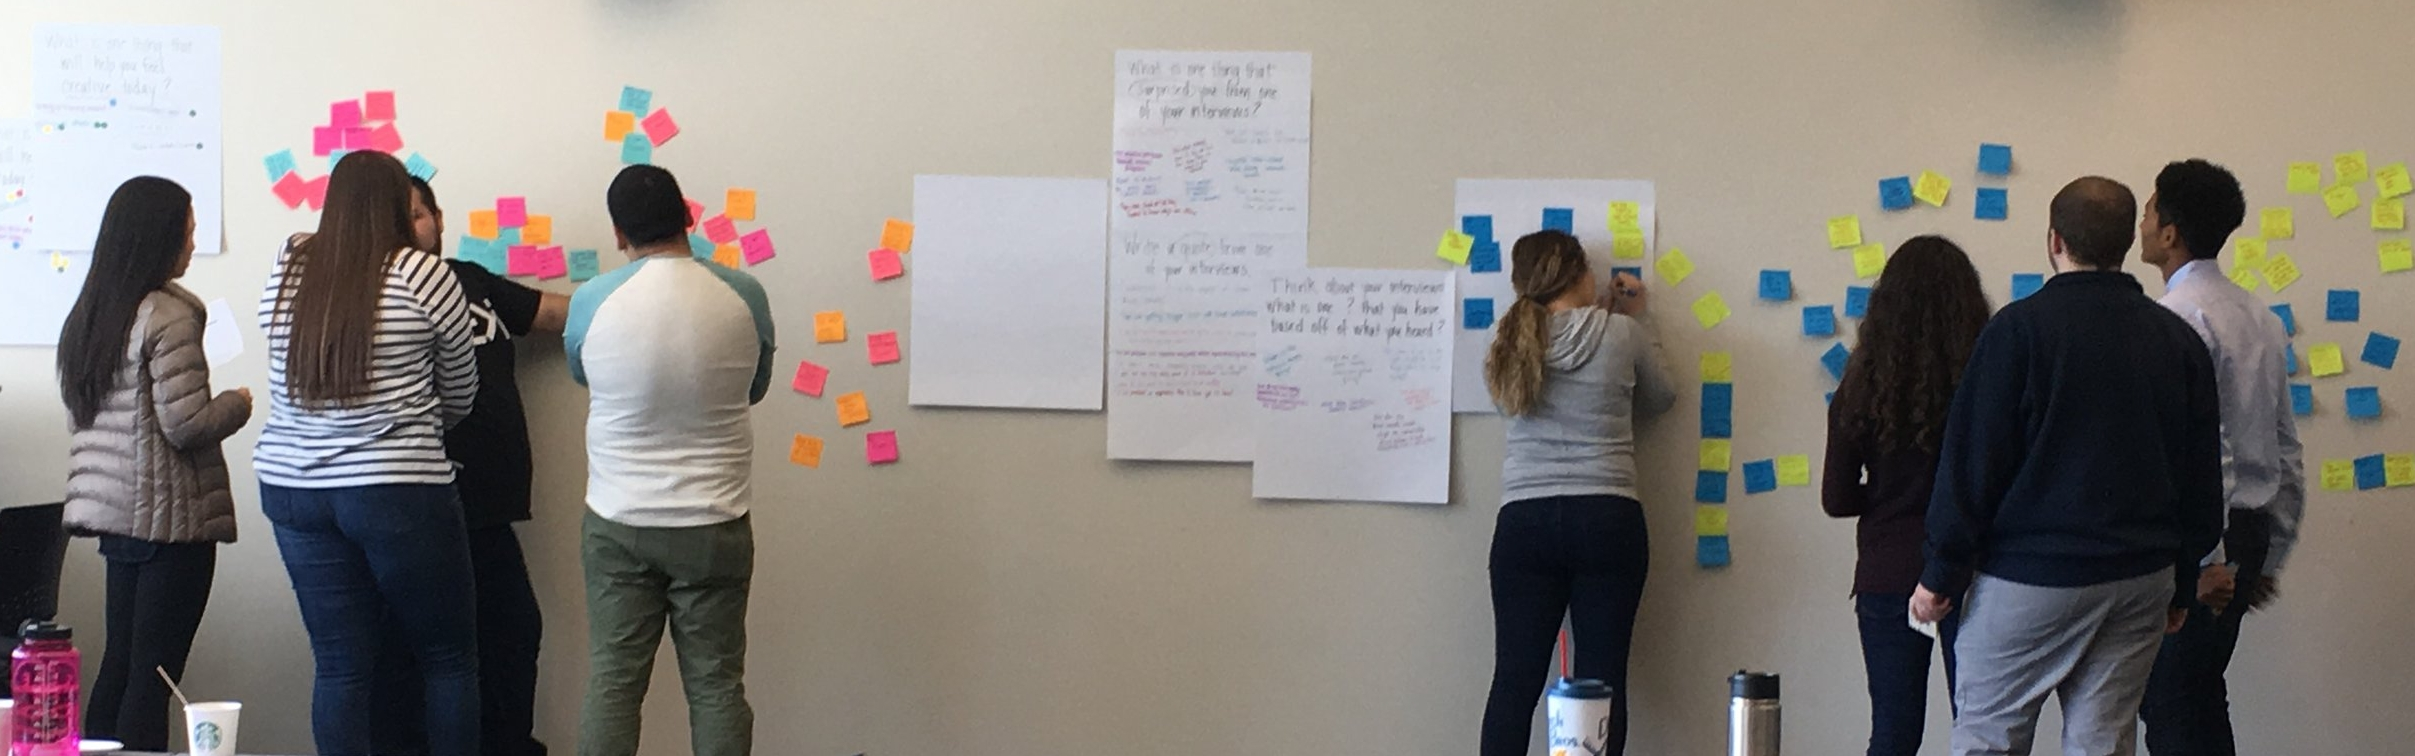 "Students at Concordia University synthesize their findings during the ""define"" stage of the design thinking process."